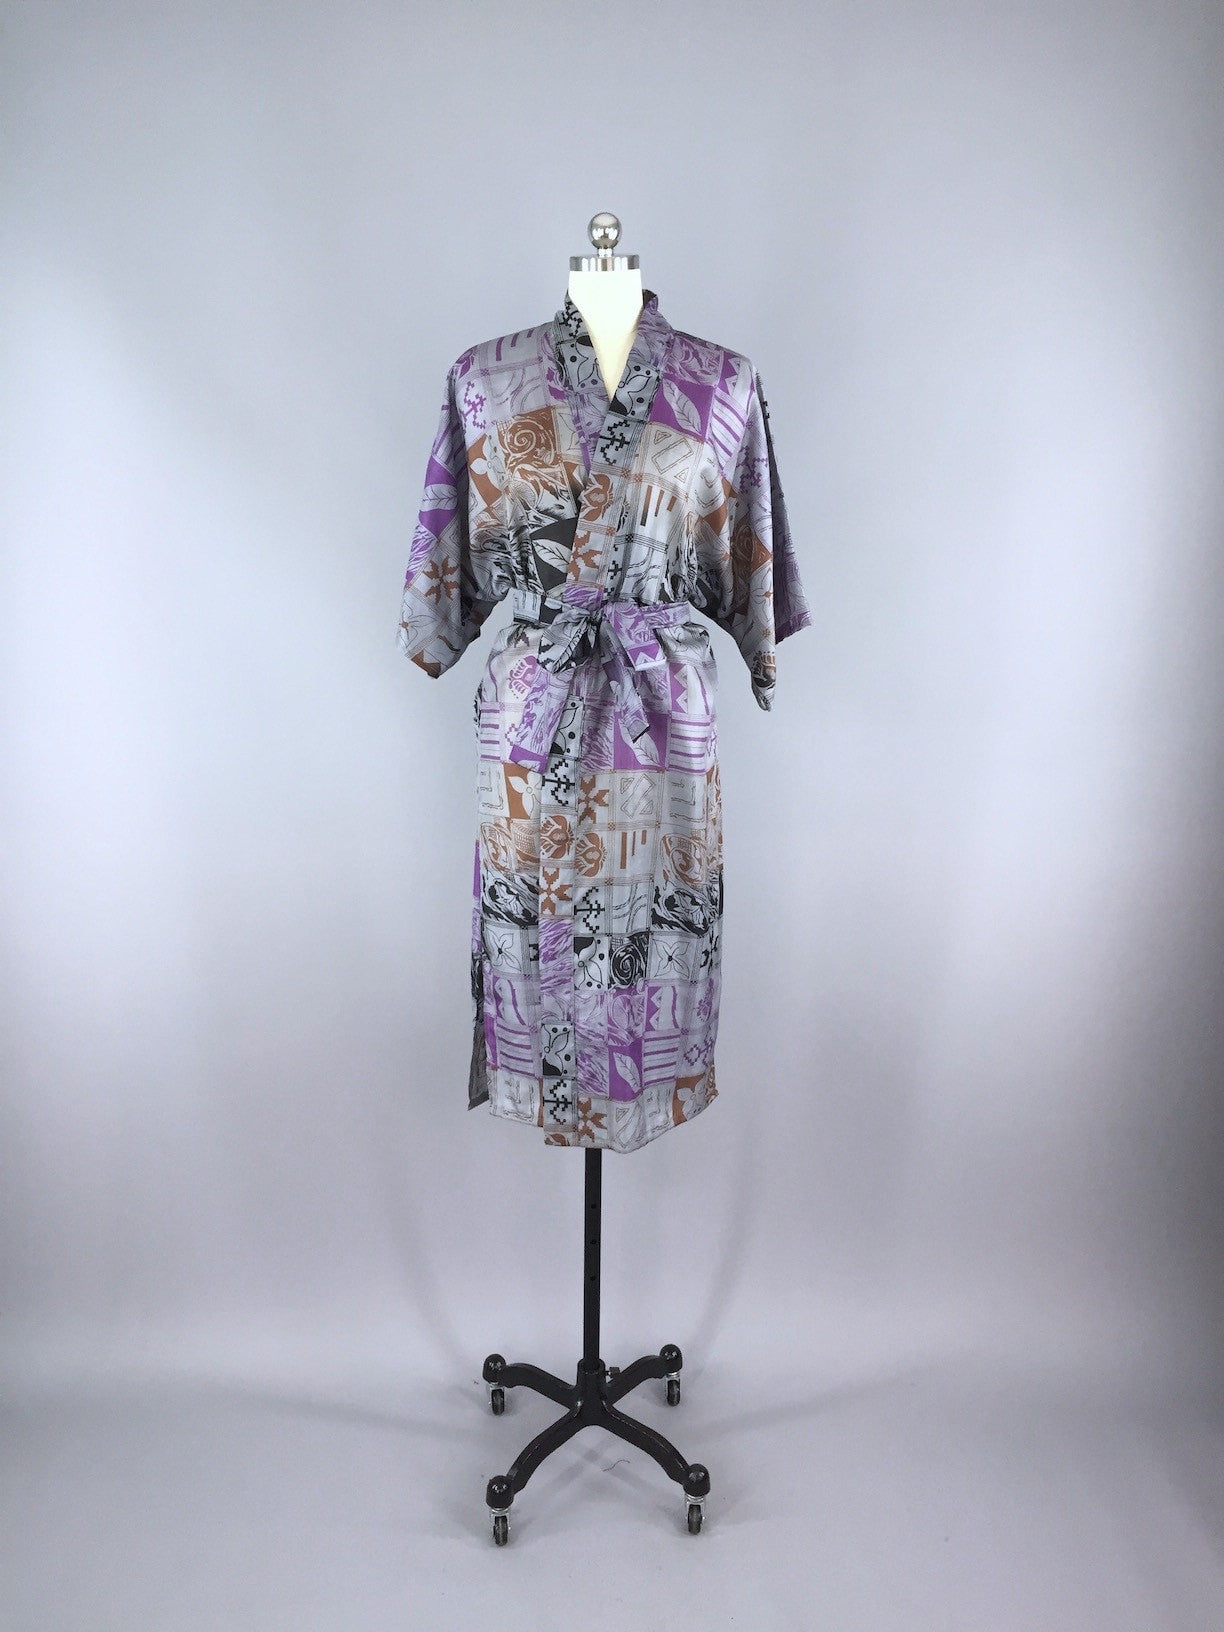 Silk Sari Robe / Grey & Purple Abstract Floral Print Sari Robe ThisBlueBird